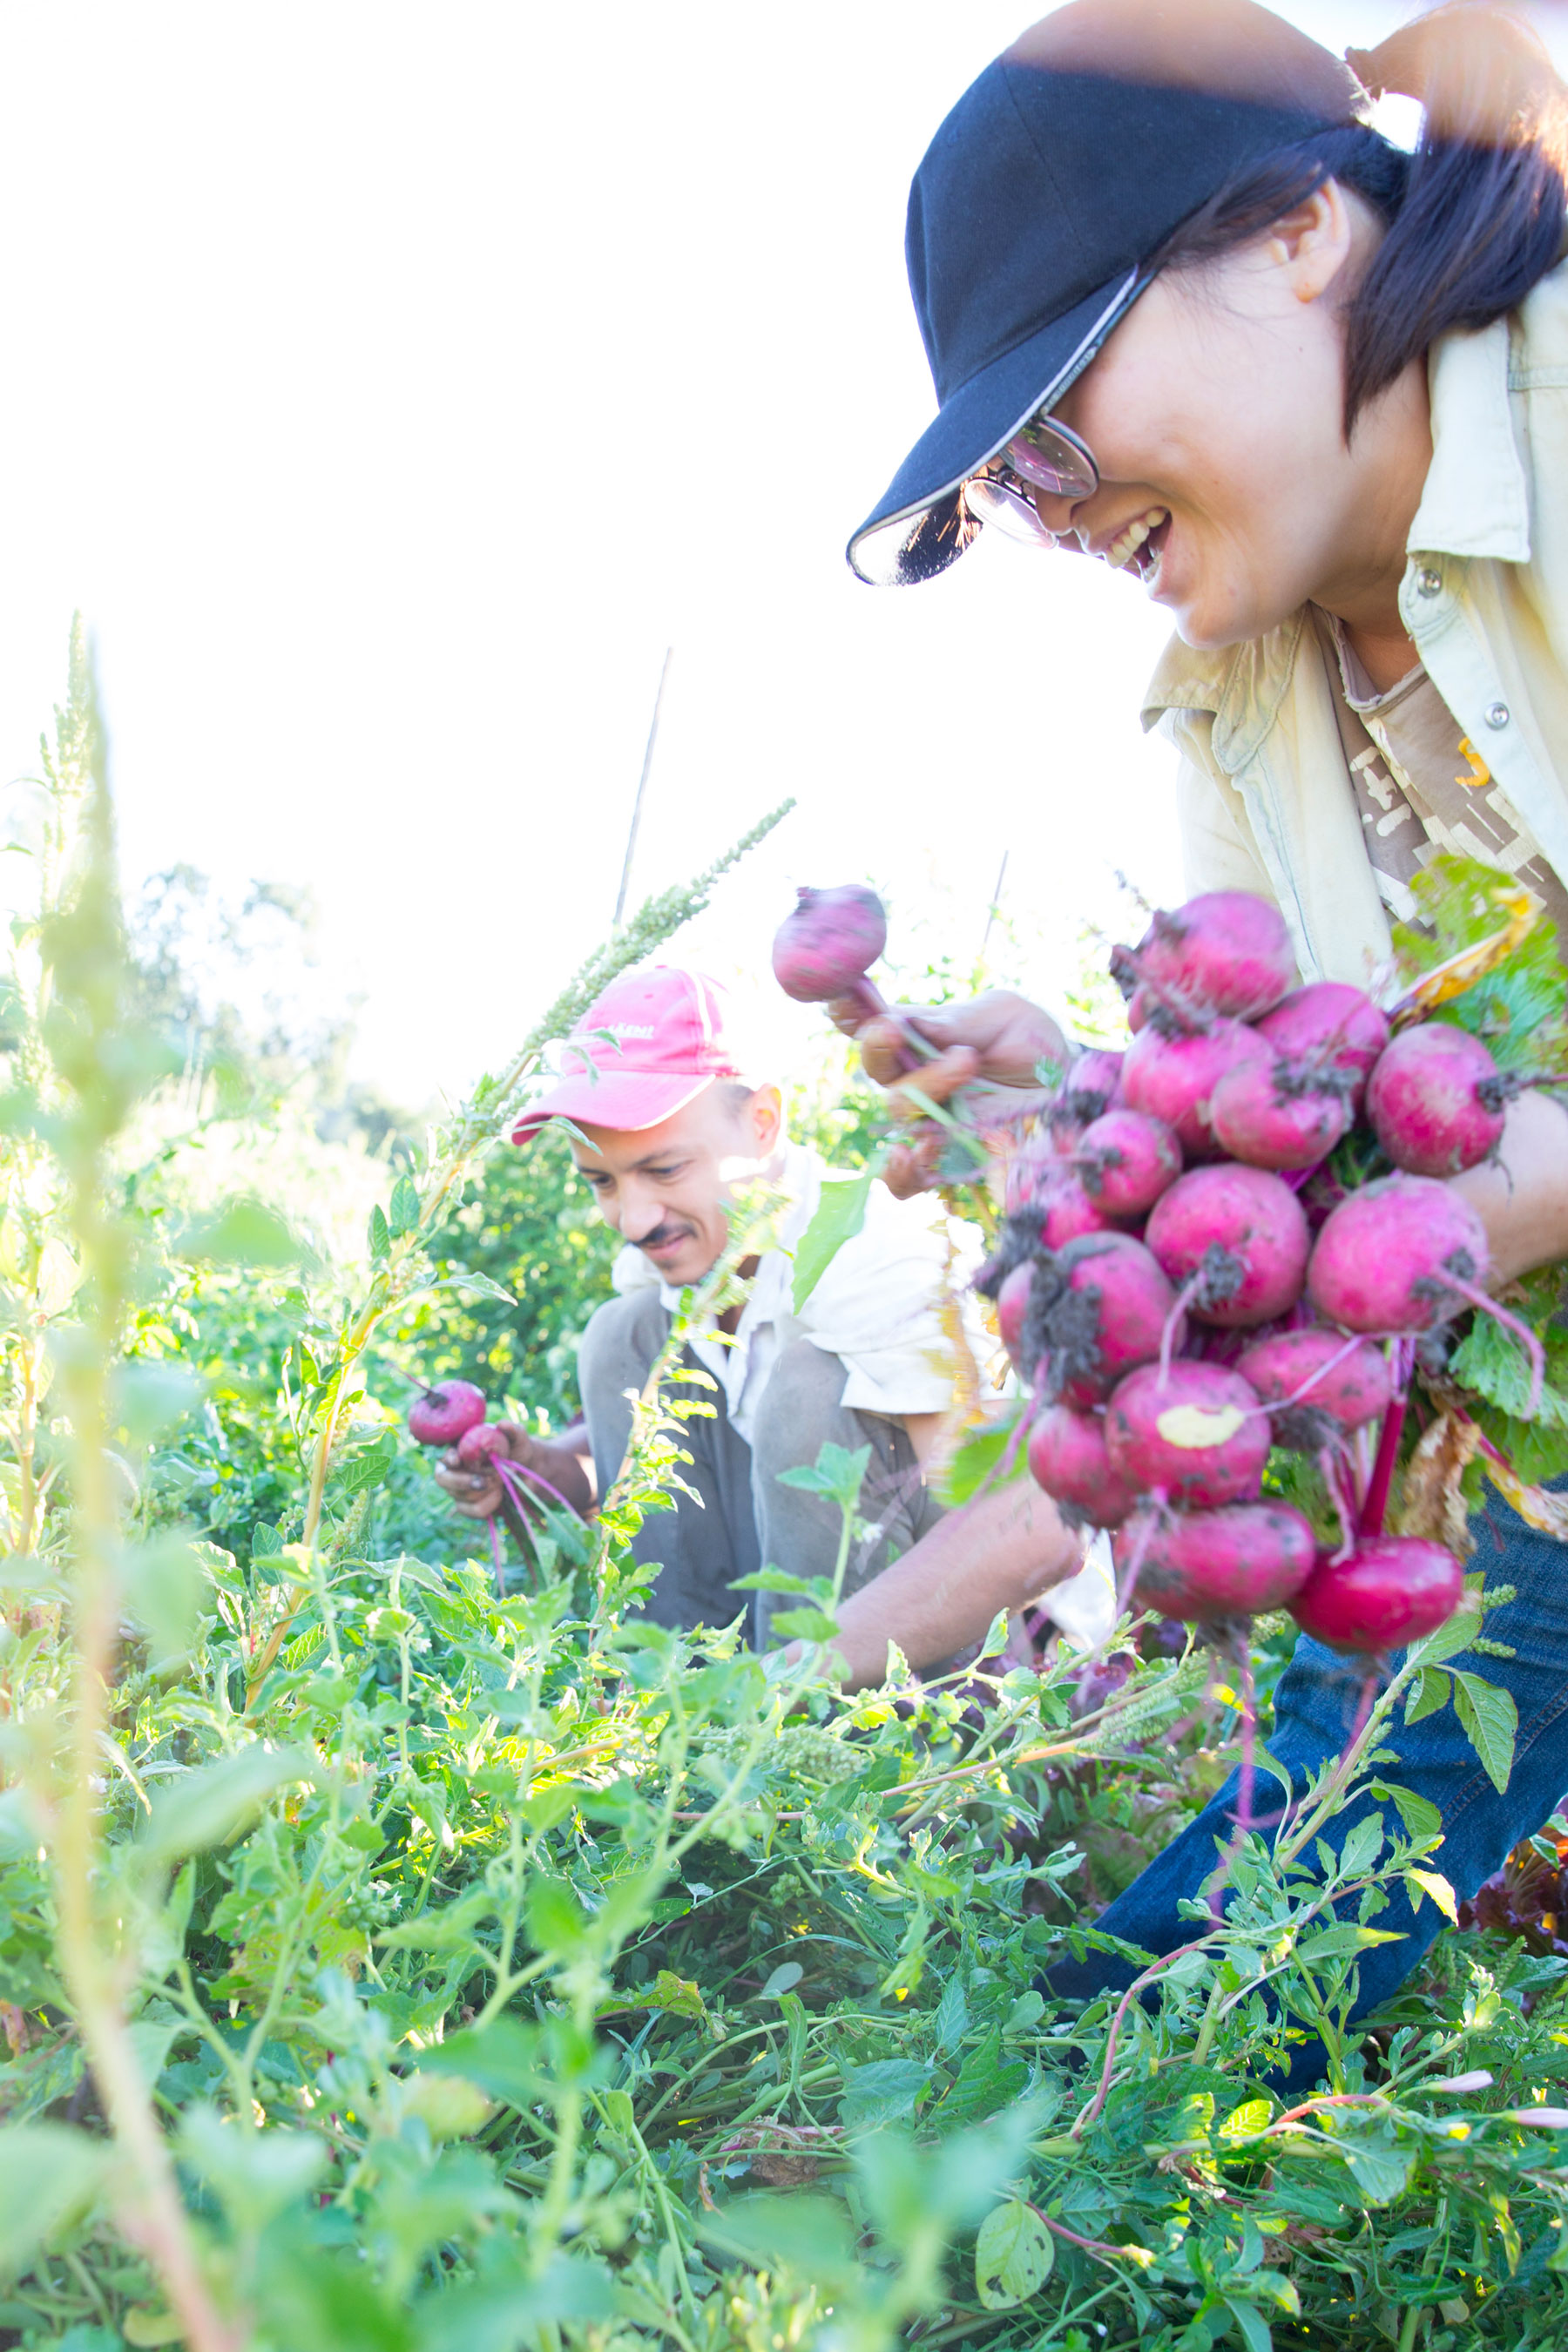 Live Power Farm interns Mei Lee Ling and Pedro Paco harvest beets in diversely planted rows.